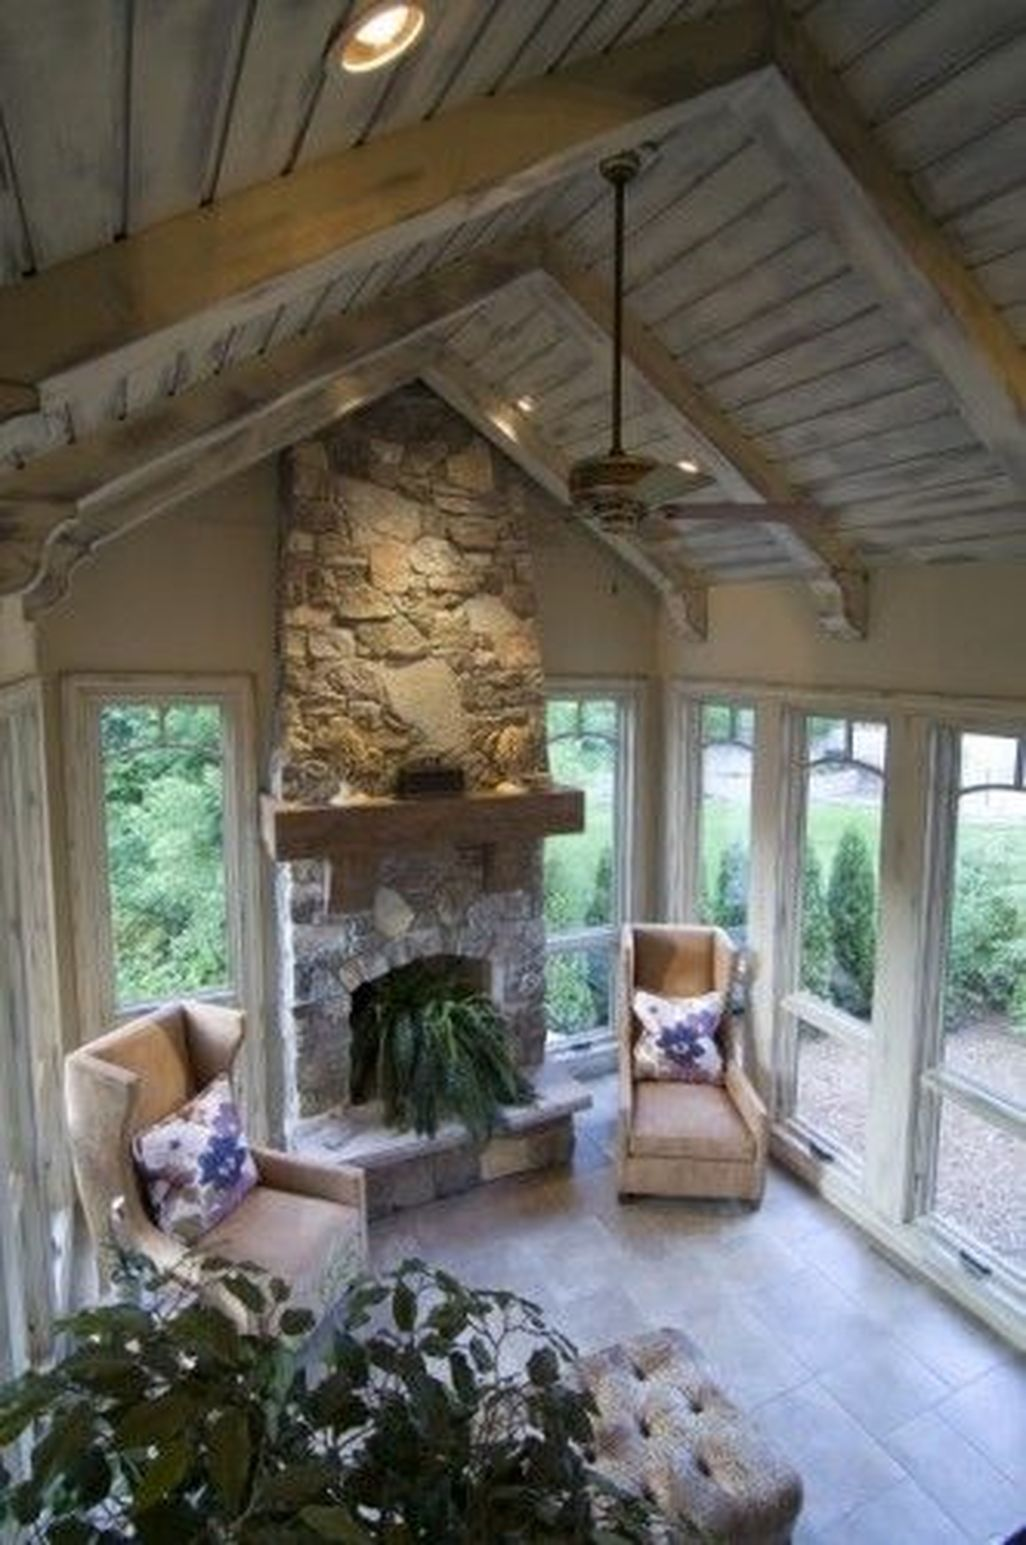 Back Porch Additions Best Ideas About Room Additions On House Additions Interior Designs: Cool 43 Unique Traditional Porch Ideas. More At Https://homishome.com/2018/07/26/43-unique